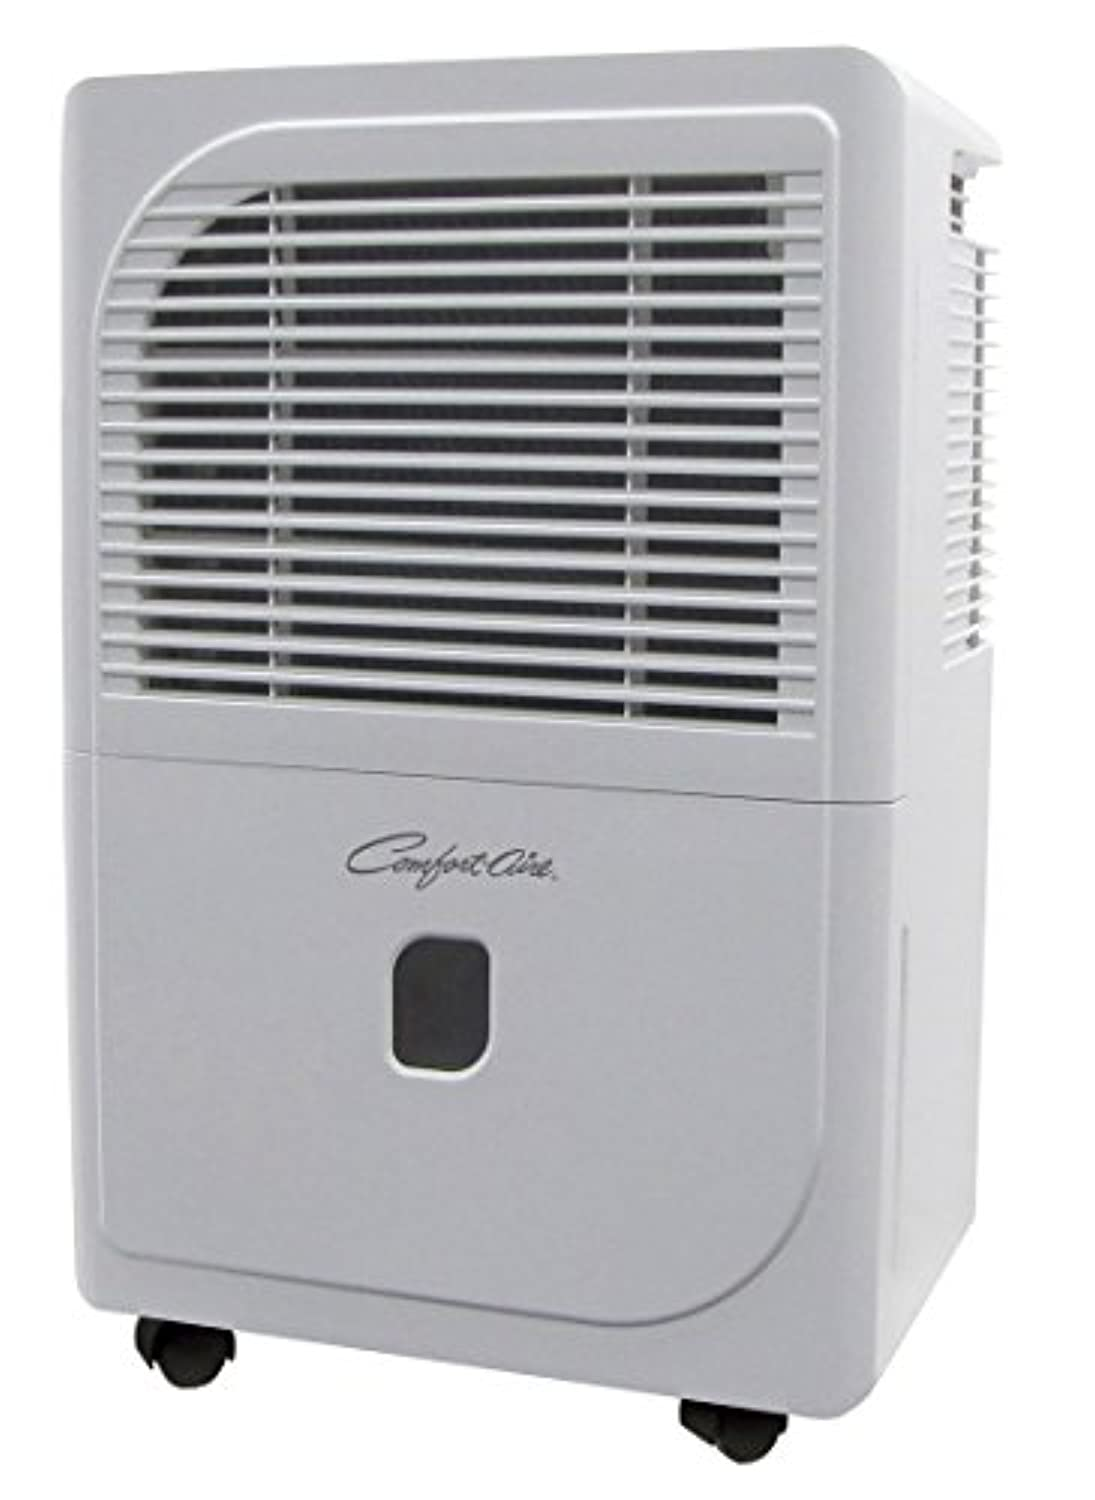 Comfort-Aire BHD-301-H Dehumidifier by Comfort-aire